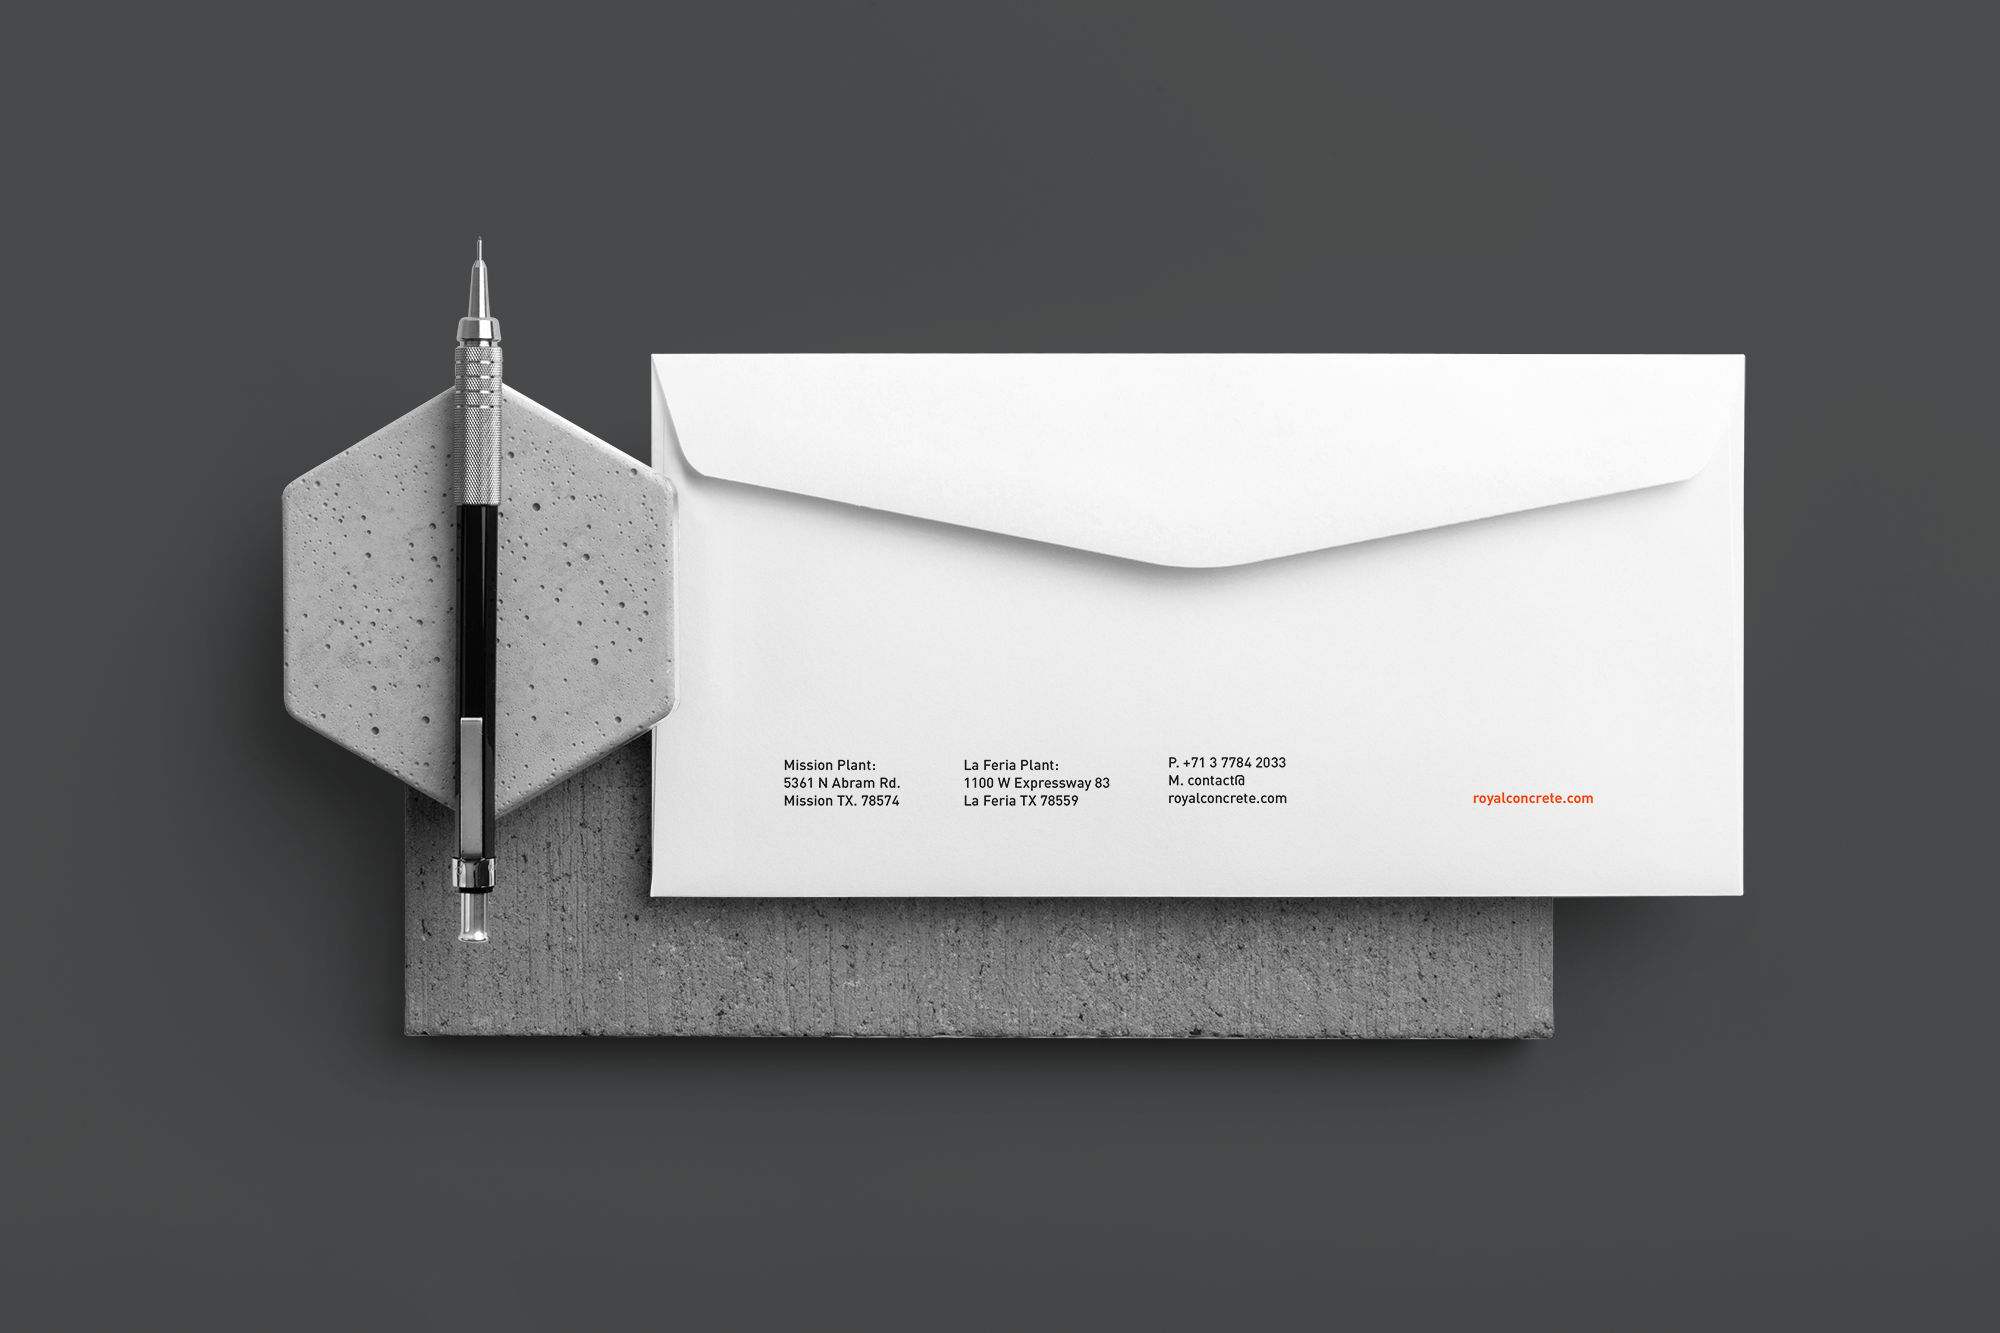 envelope_royal_concrete_yoenpaperland